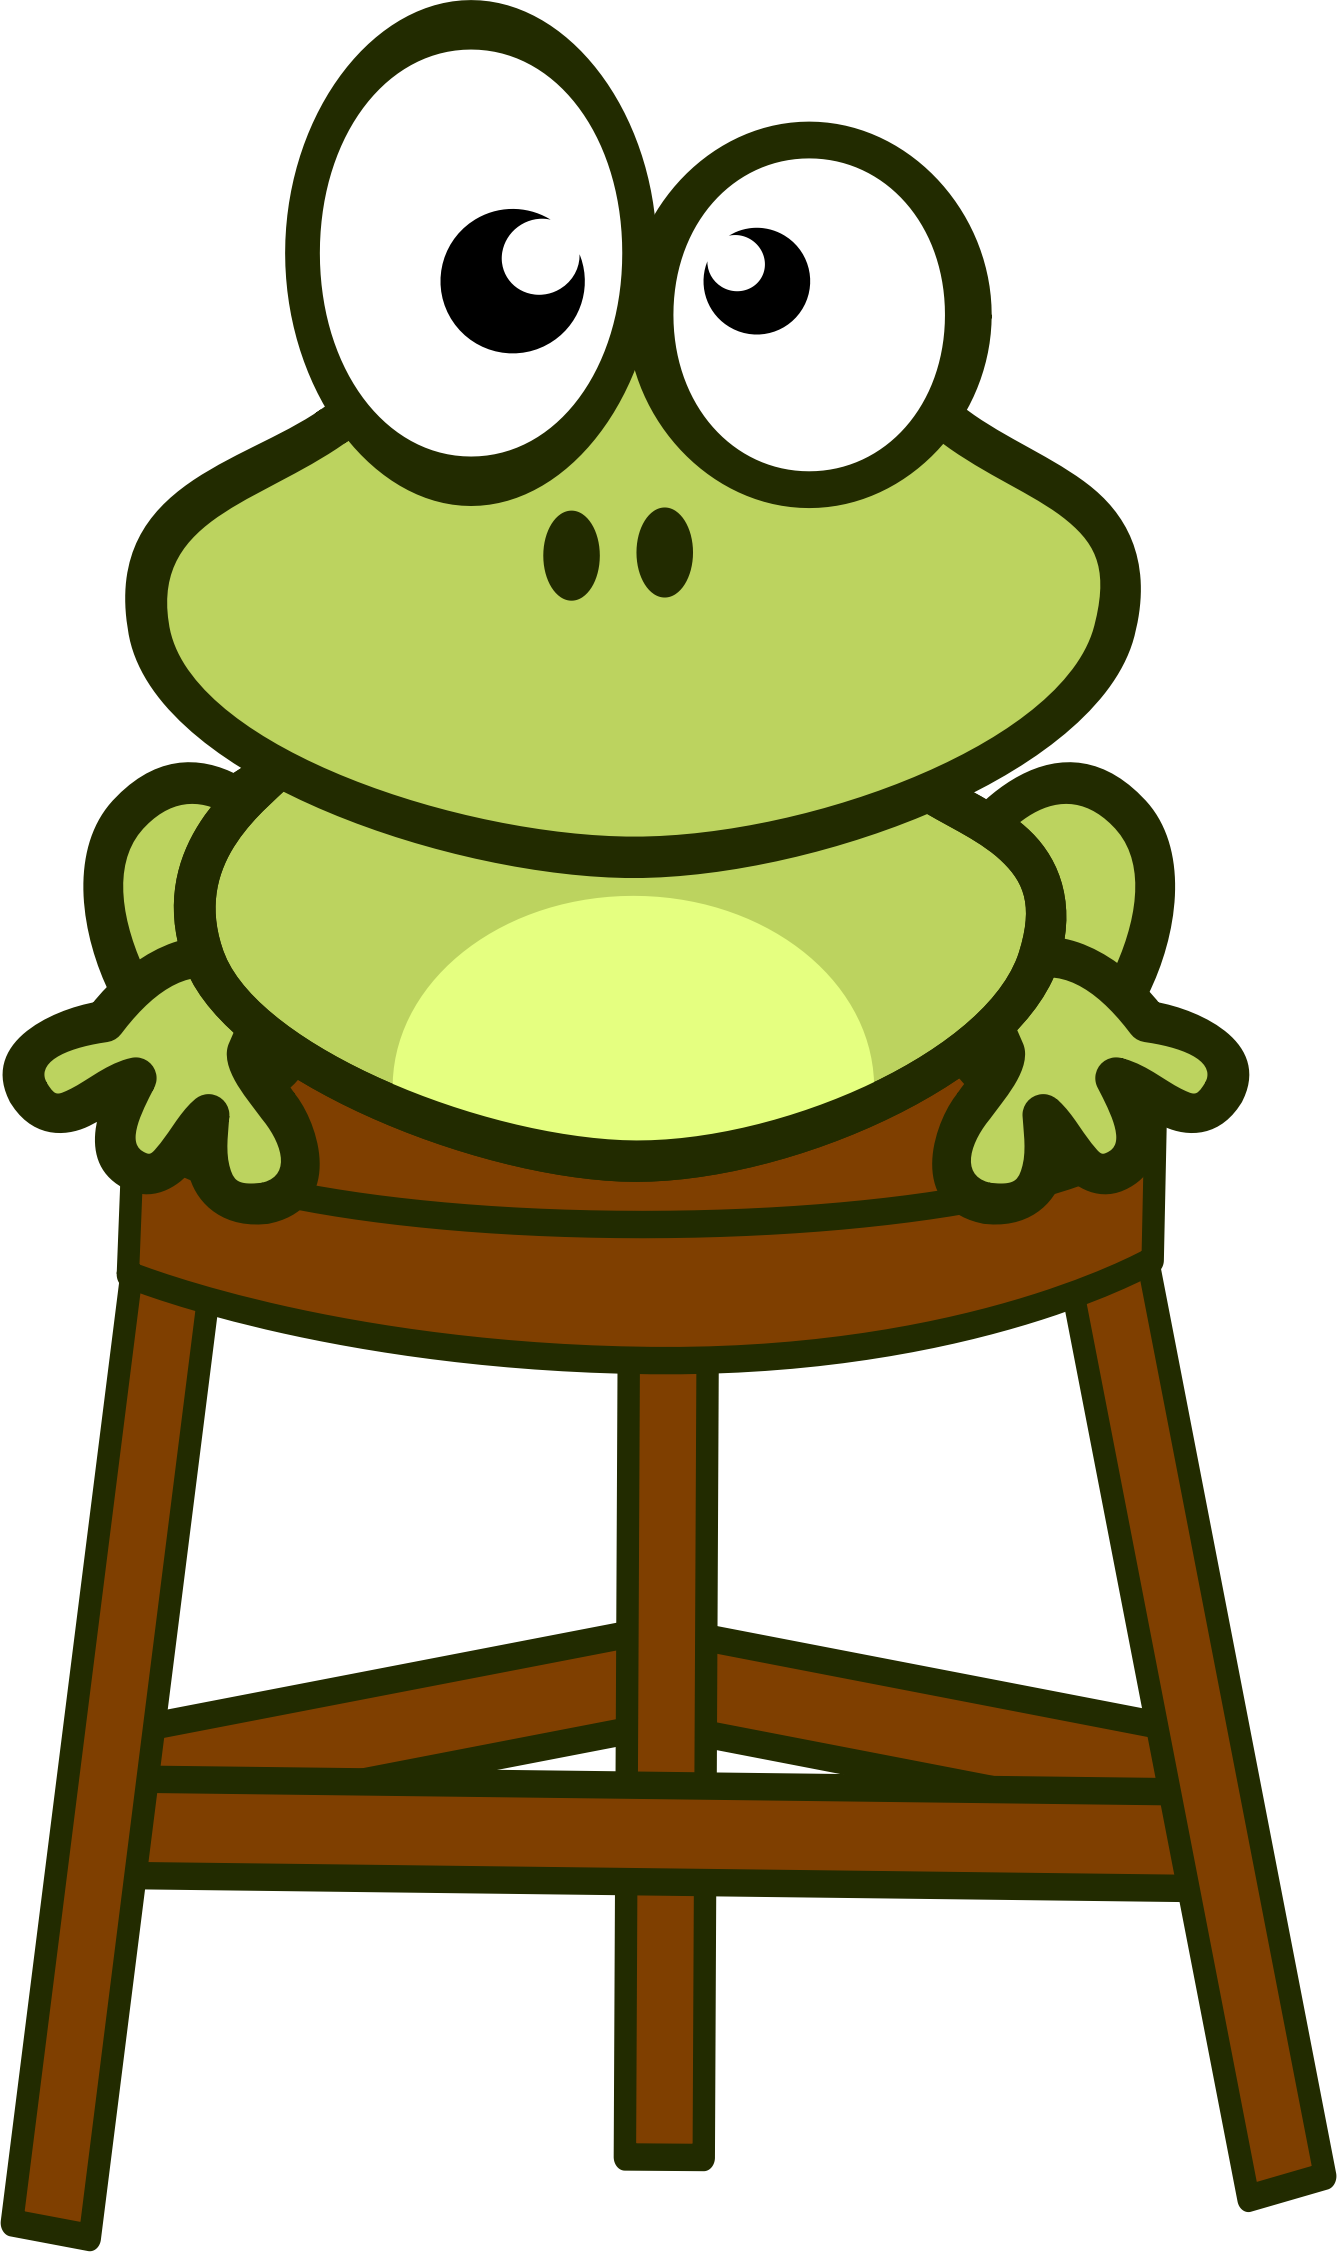 BIG IMAGE PNG : frogonstool from openclipart.org size 1337 x 2252 png 171kB